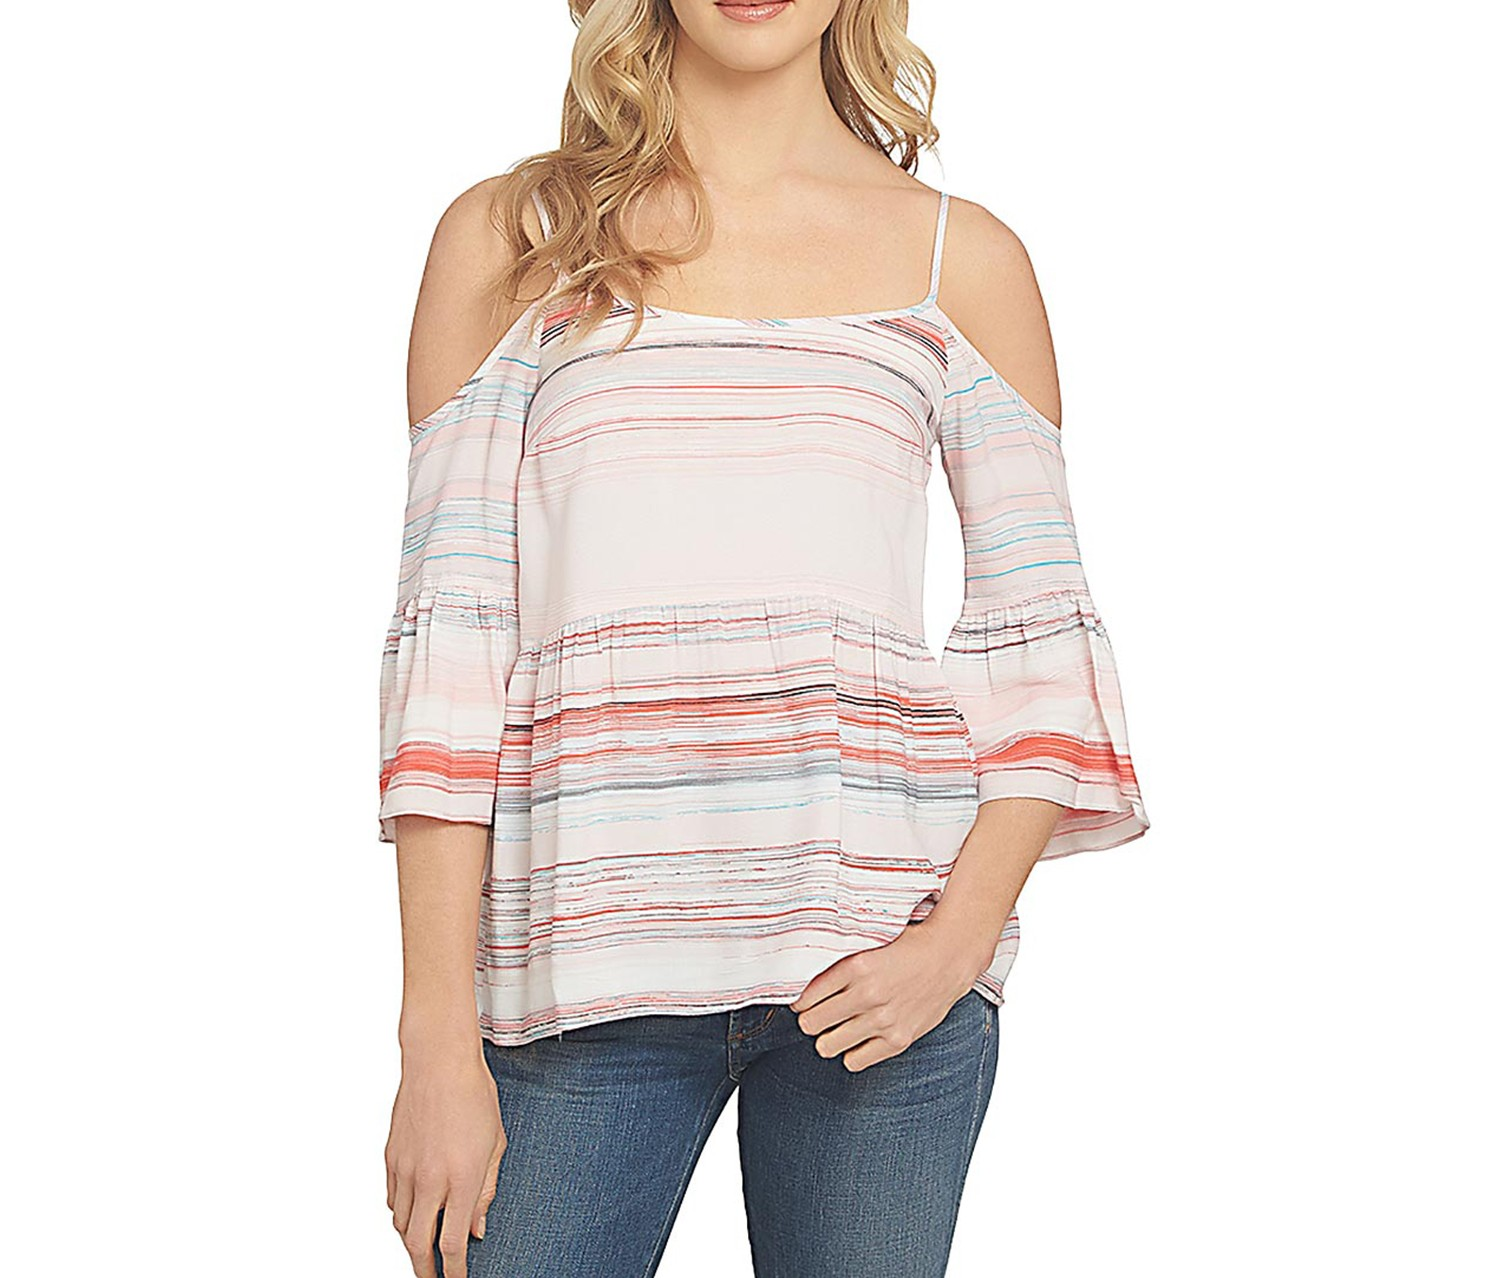 b5a799d0c Shop 1.State 1.state Striped Ruffled Cold-Shoulder Top, Pink for ...